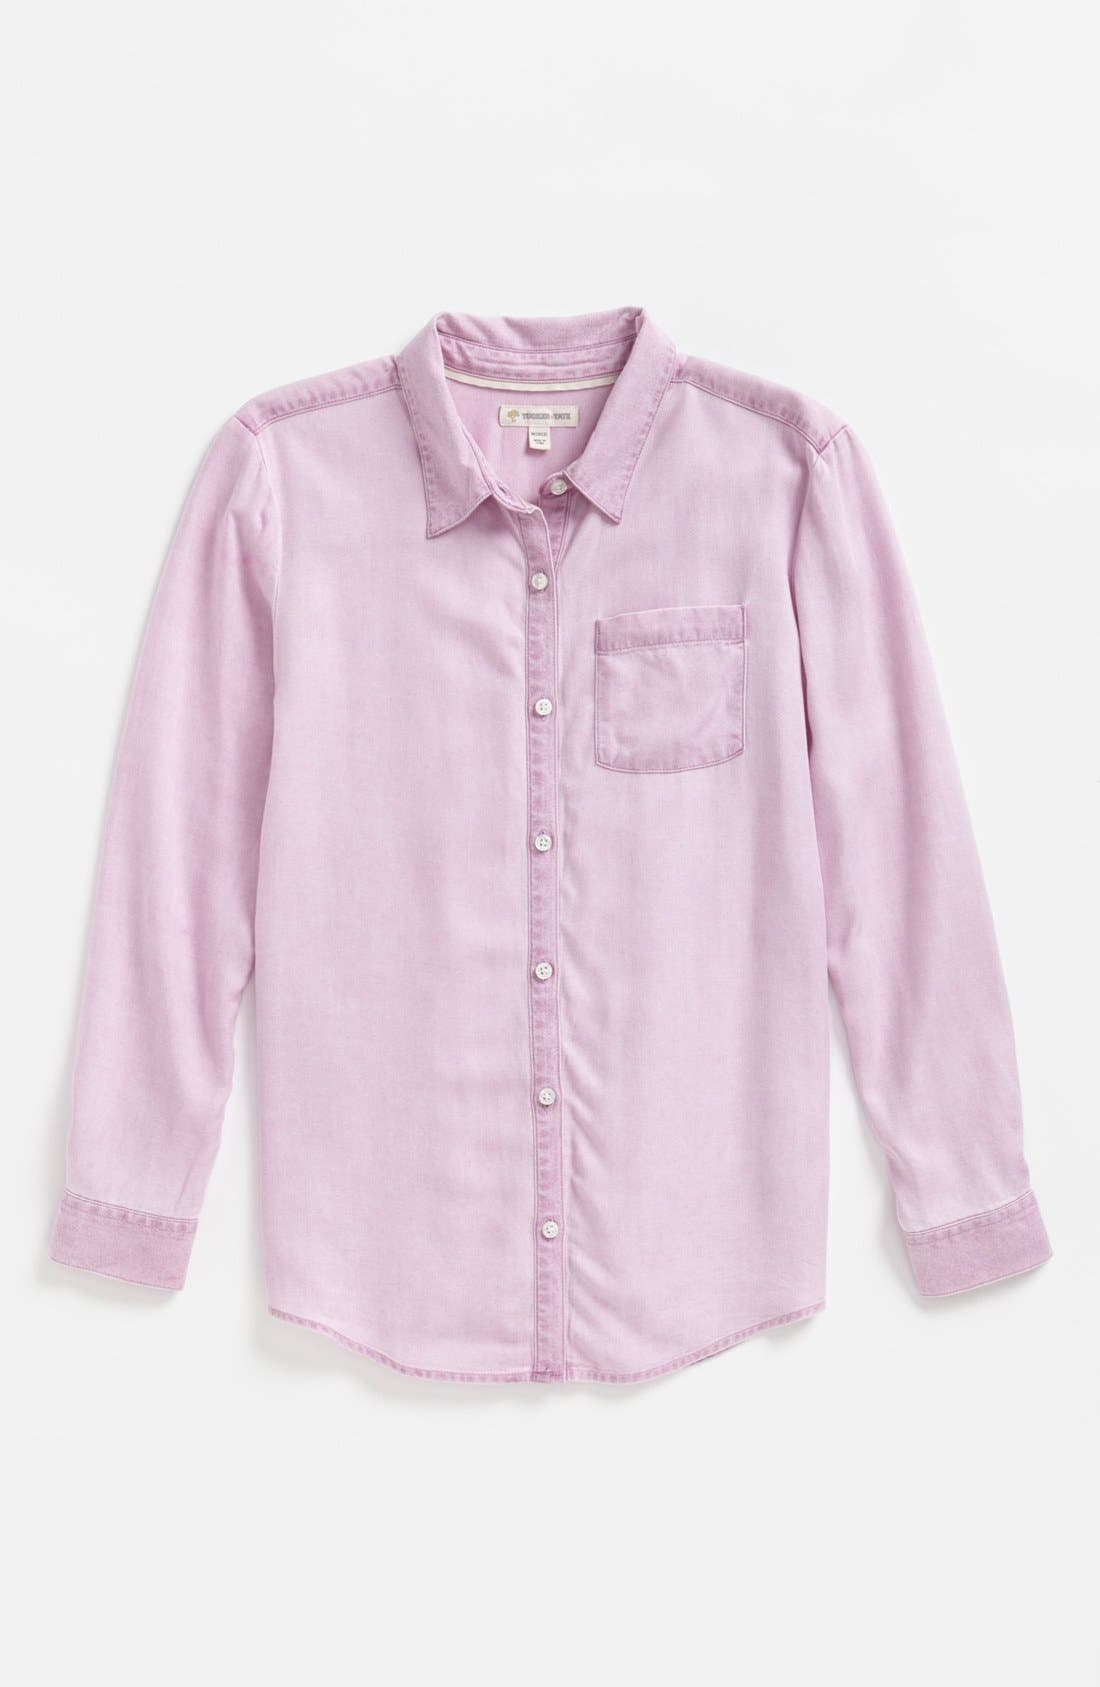 Main Image - Tucker + Tate 'Nikki' Button Down Top (Big Girls)